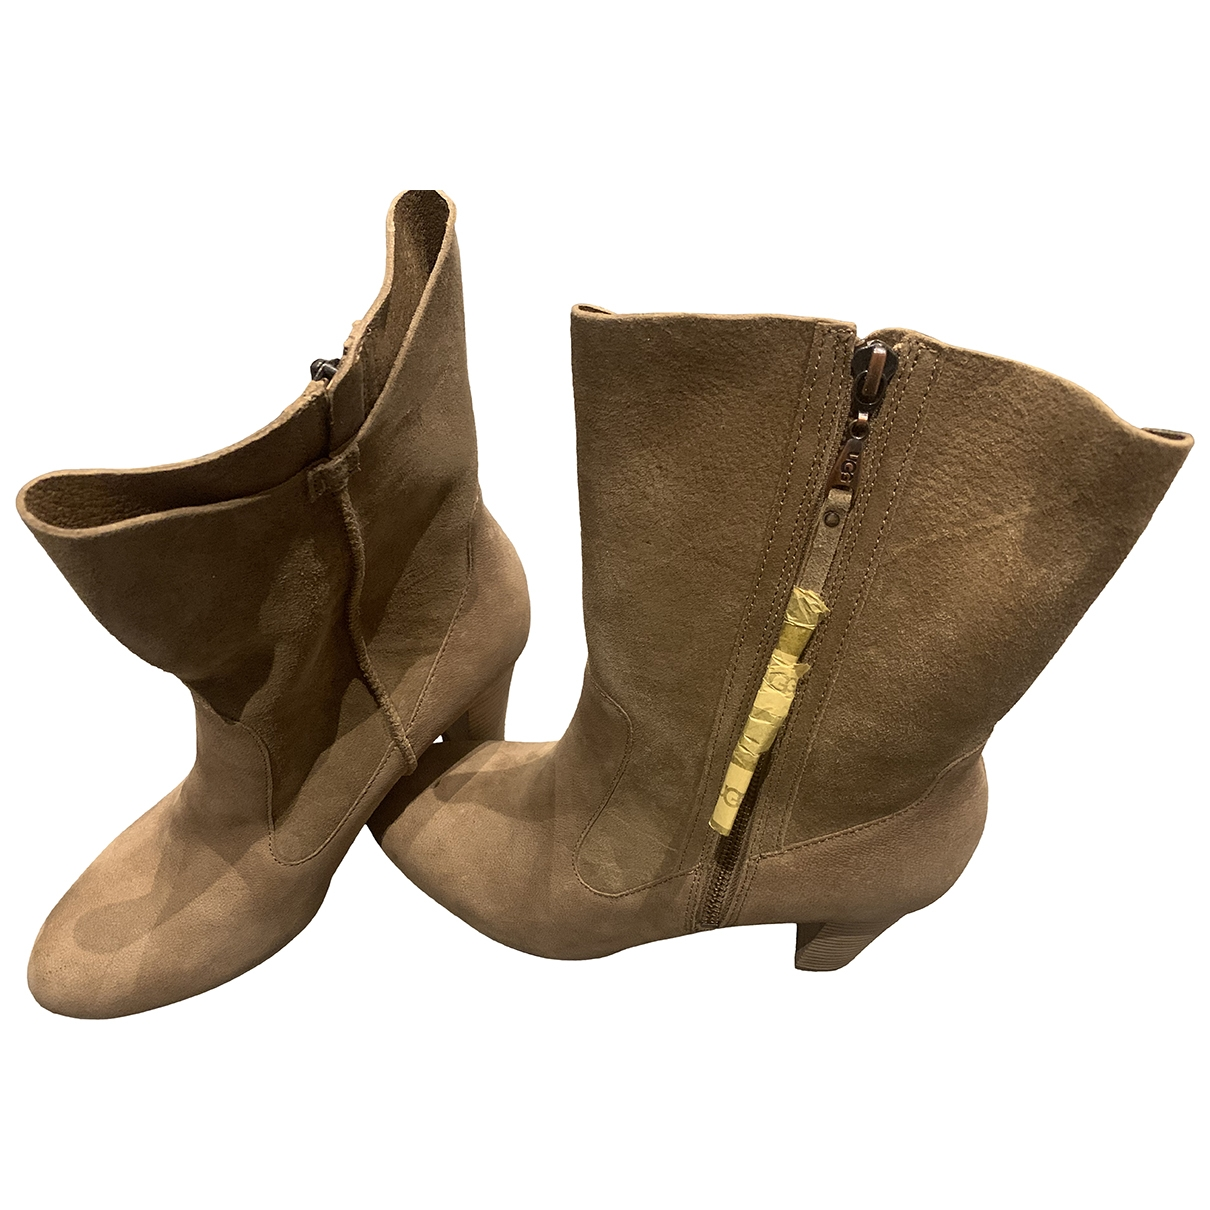 Ugg \N Beige Leather Boots for Women 38.5 EU